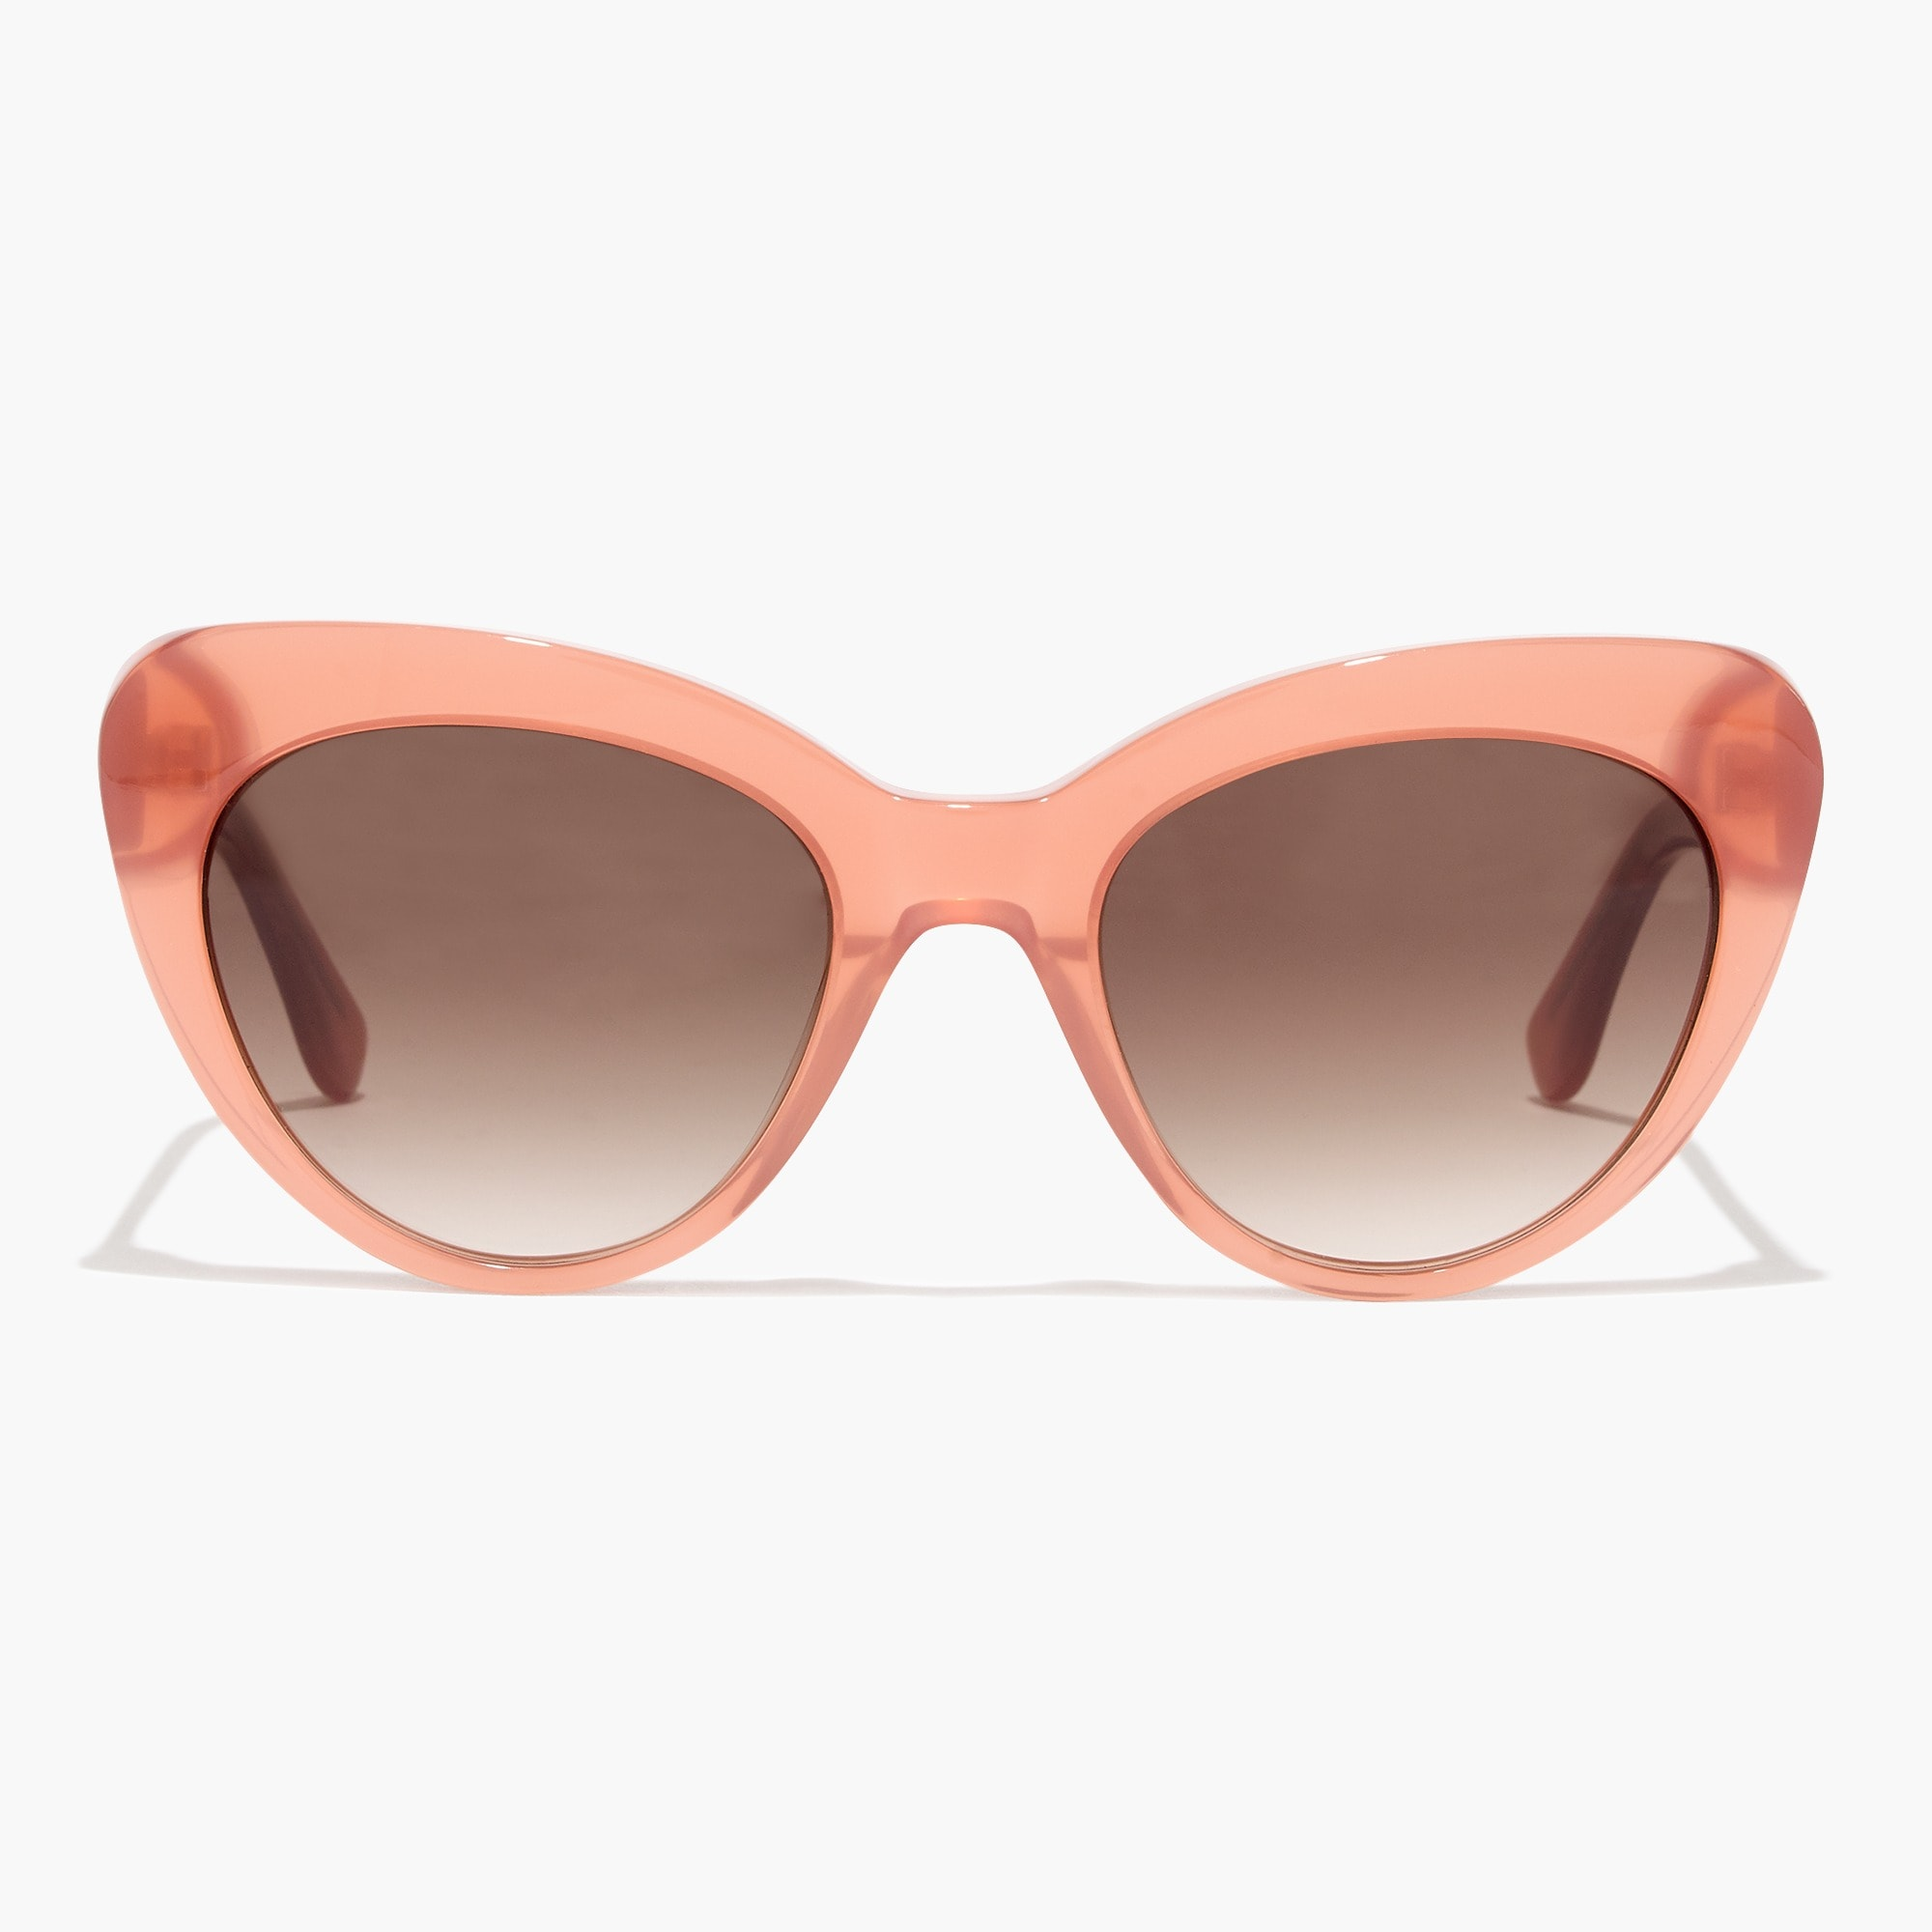 Veranda cateye sunglasses women new arrivals c